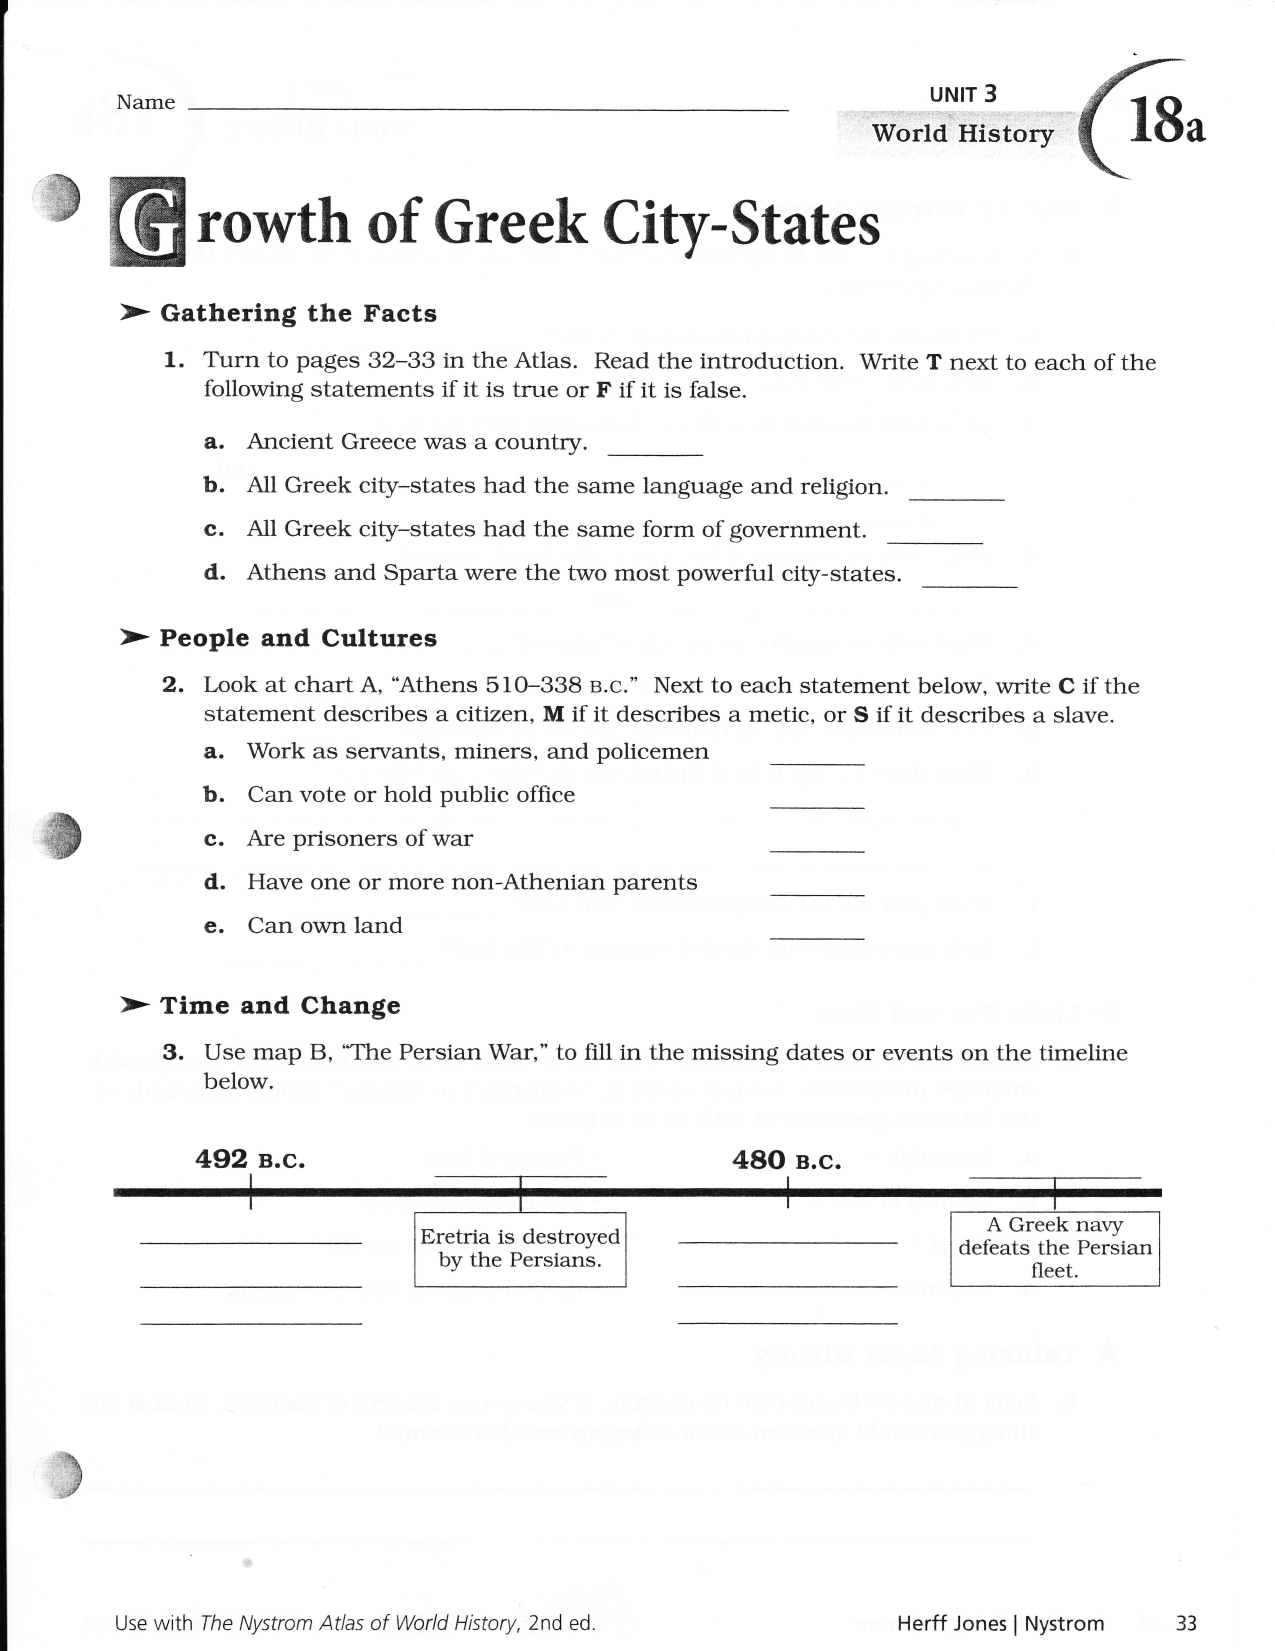 Growth Of Greek City States 18Ab And Nystrom Atlas Of World History Worksheets Answers